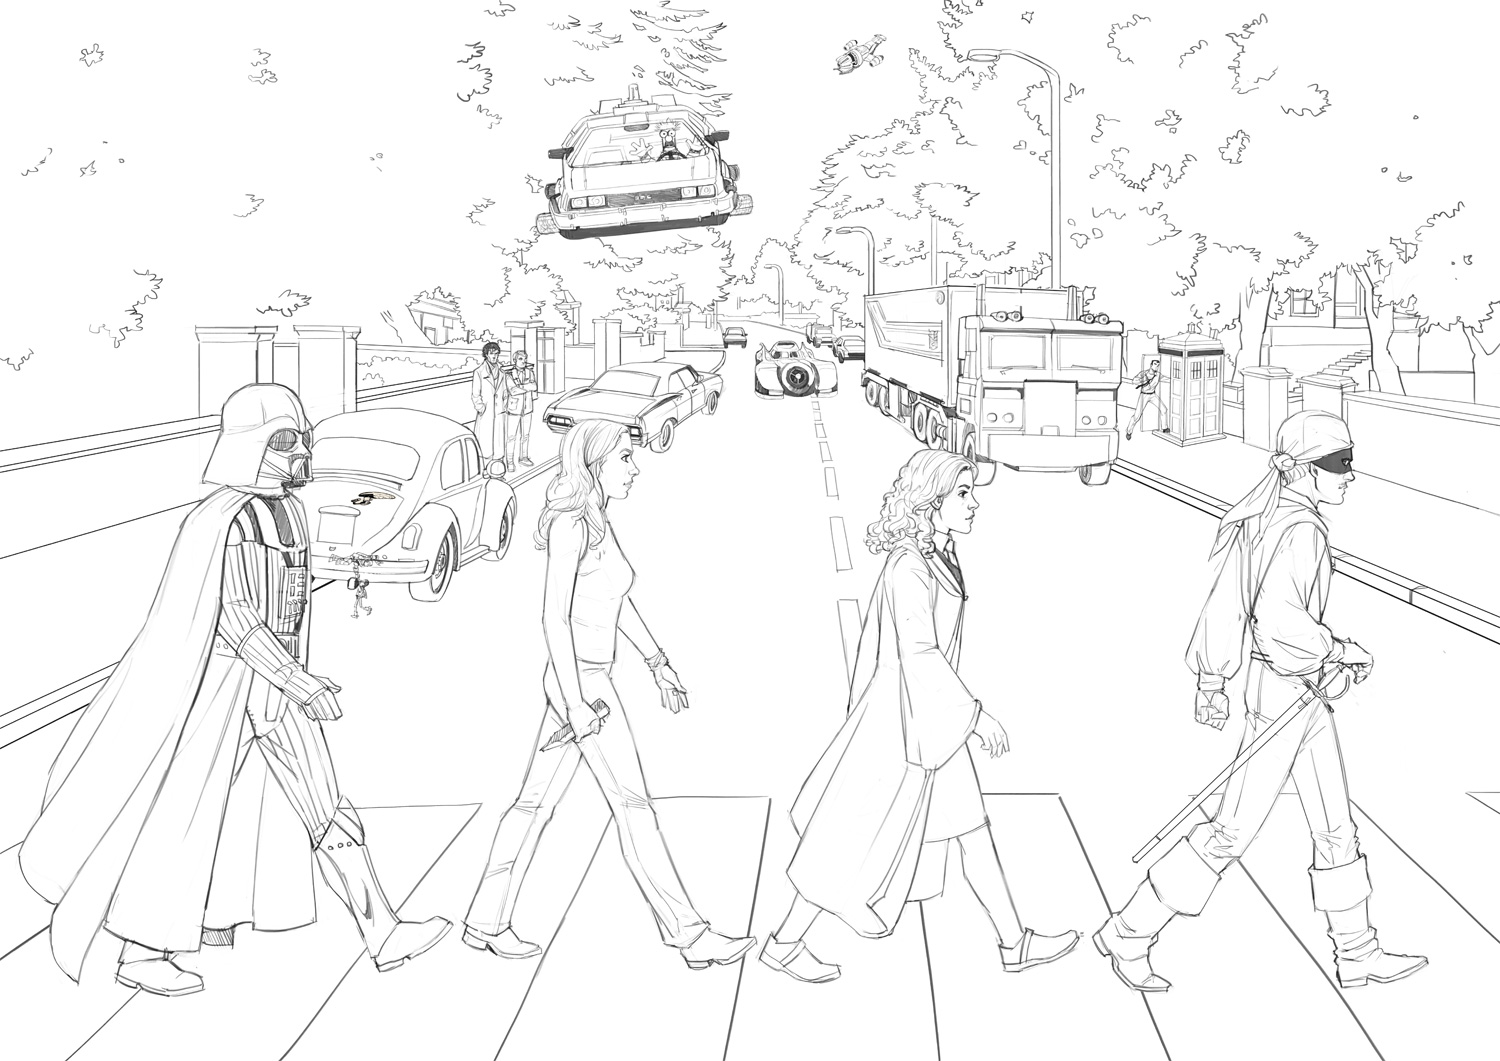 Geek Road - pencils